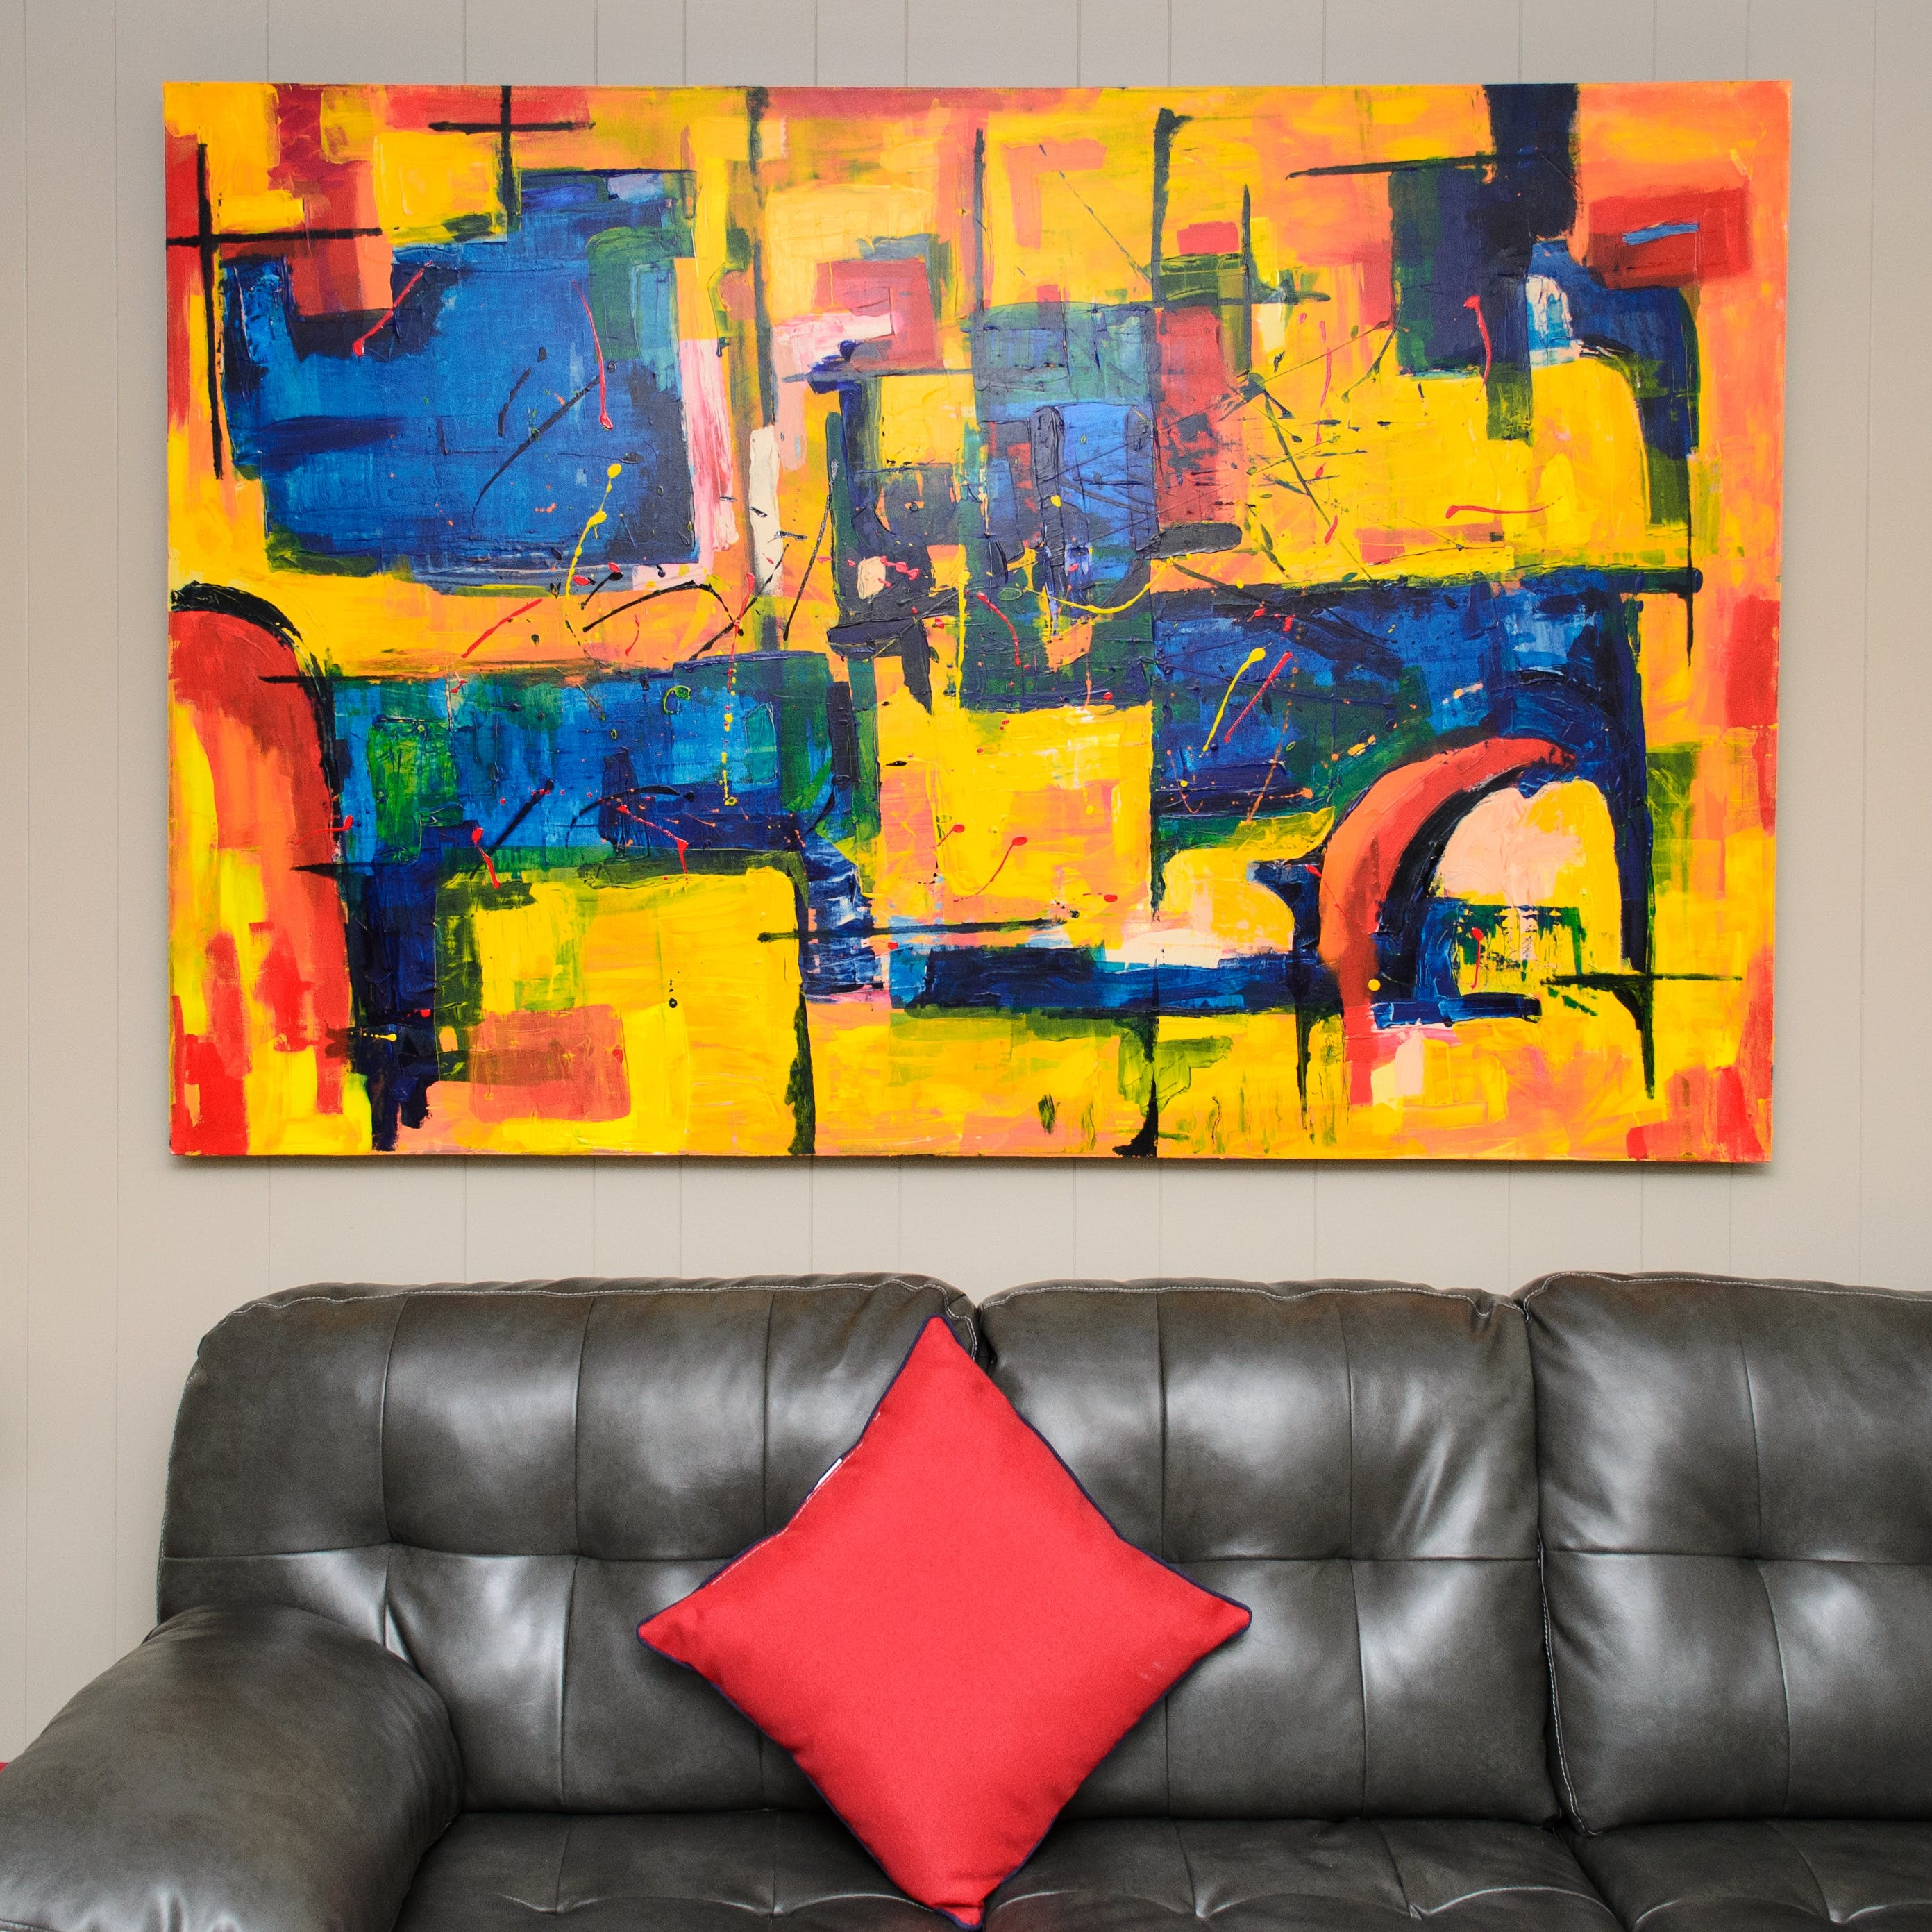 Abstract Color Painting on White Painted Wall